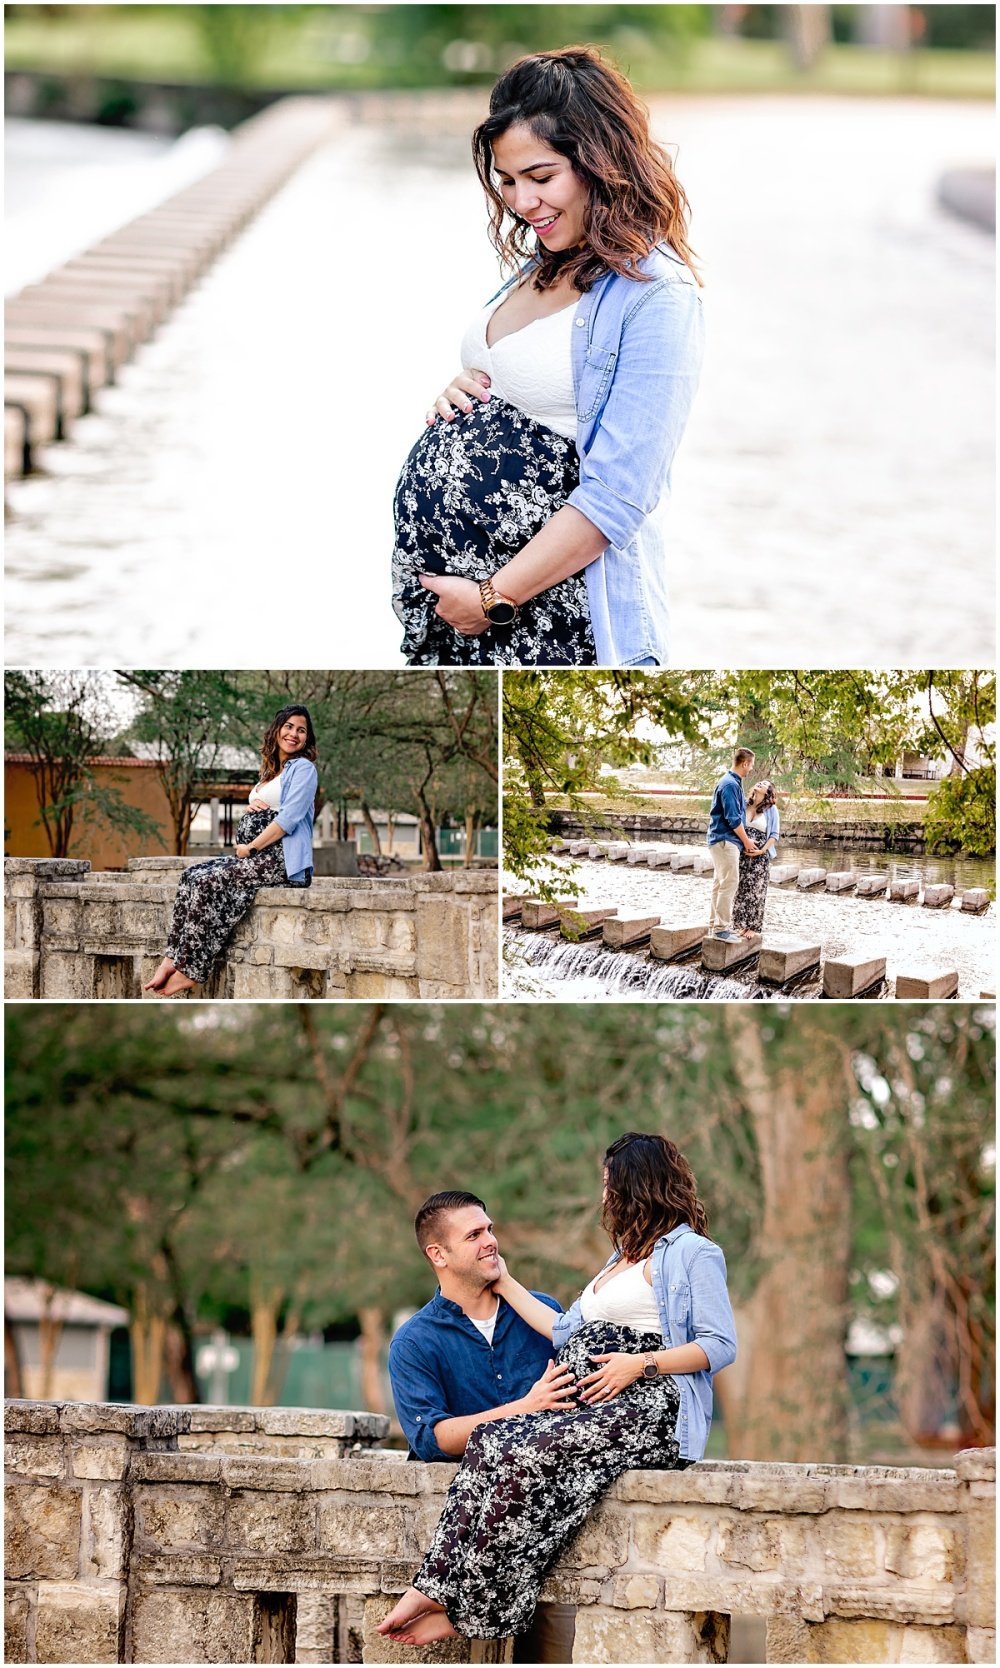 Maternity-Photo-Session-Brakenridge-Park-San-Antonio-Texas-Carly-Barton-Photography_0002.jpg